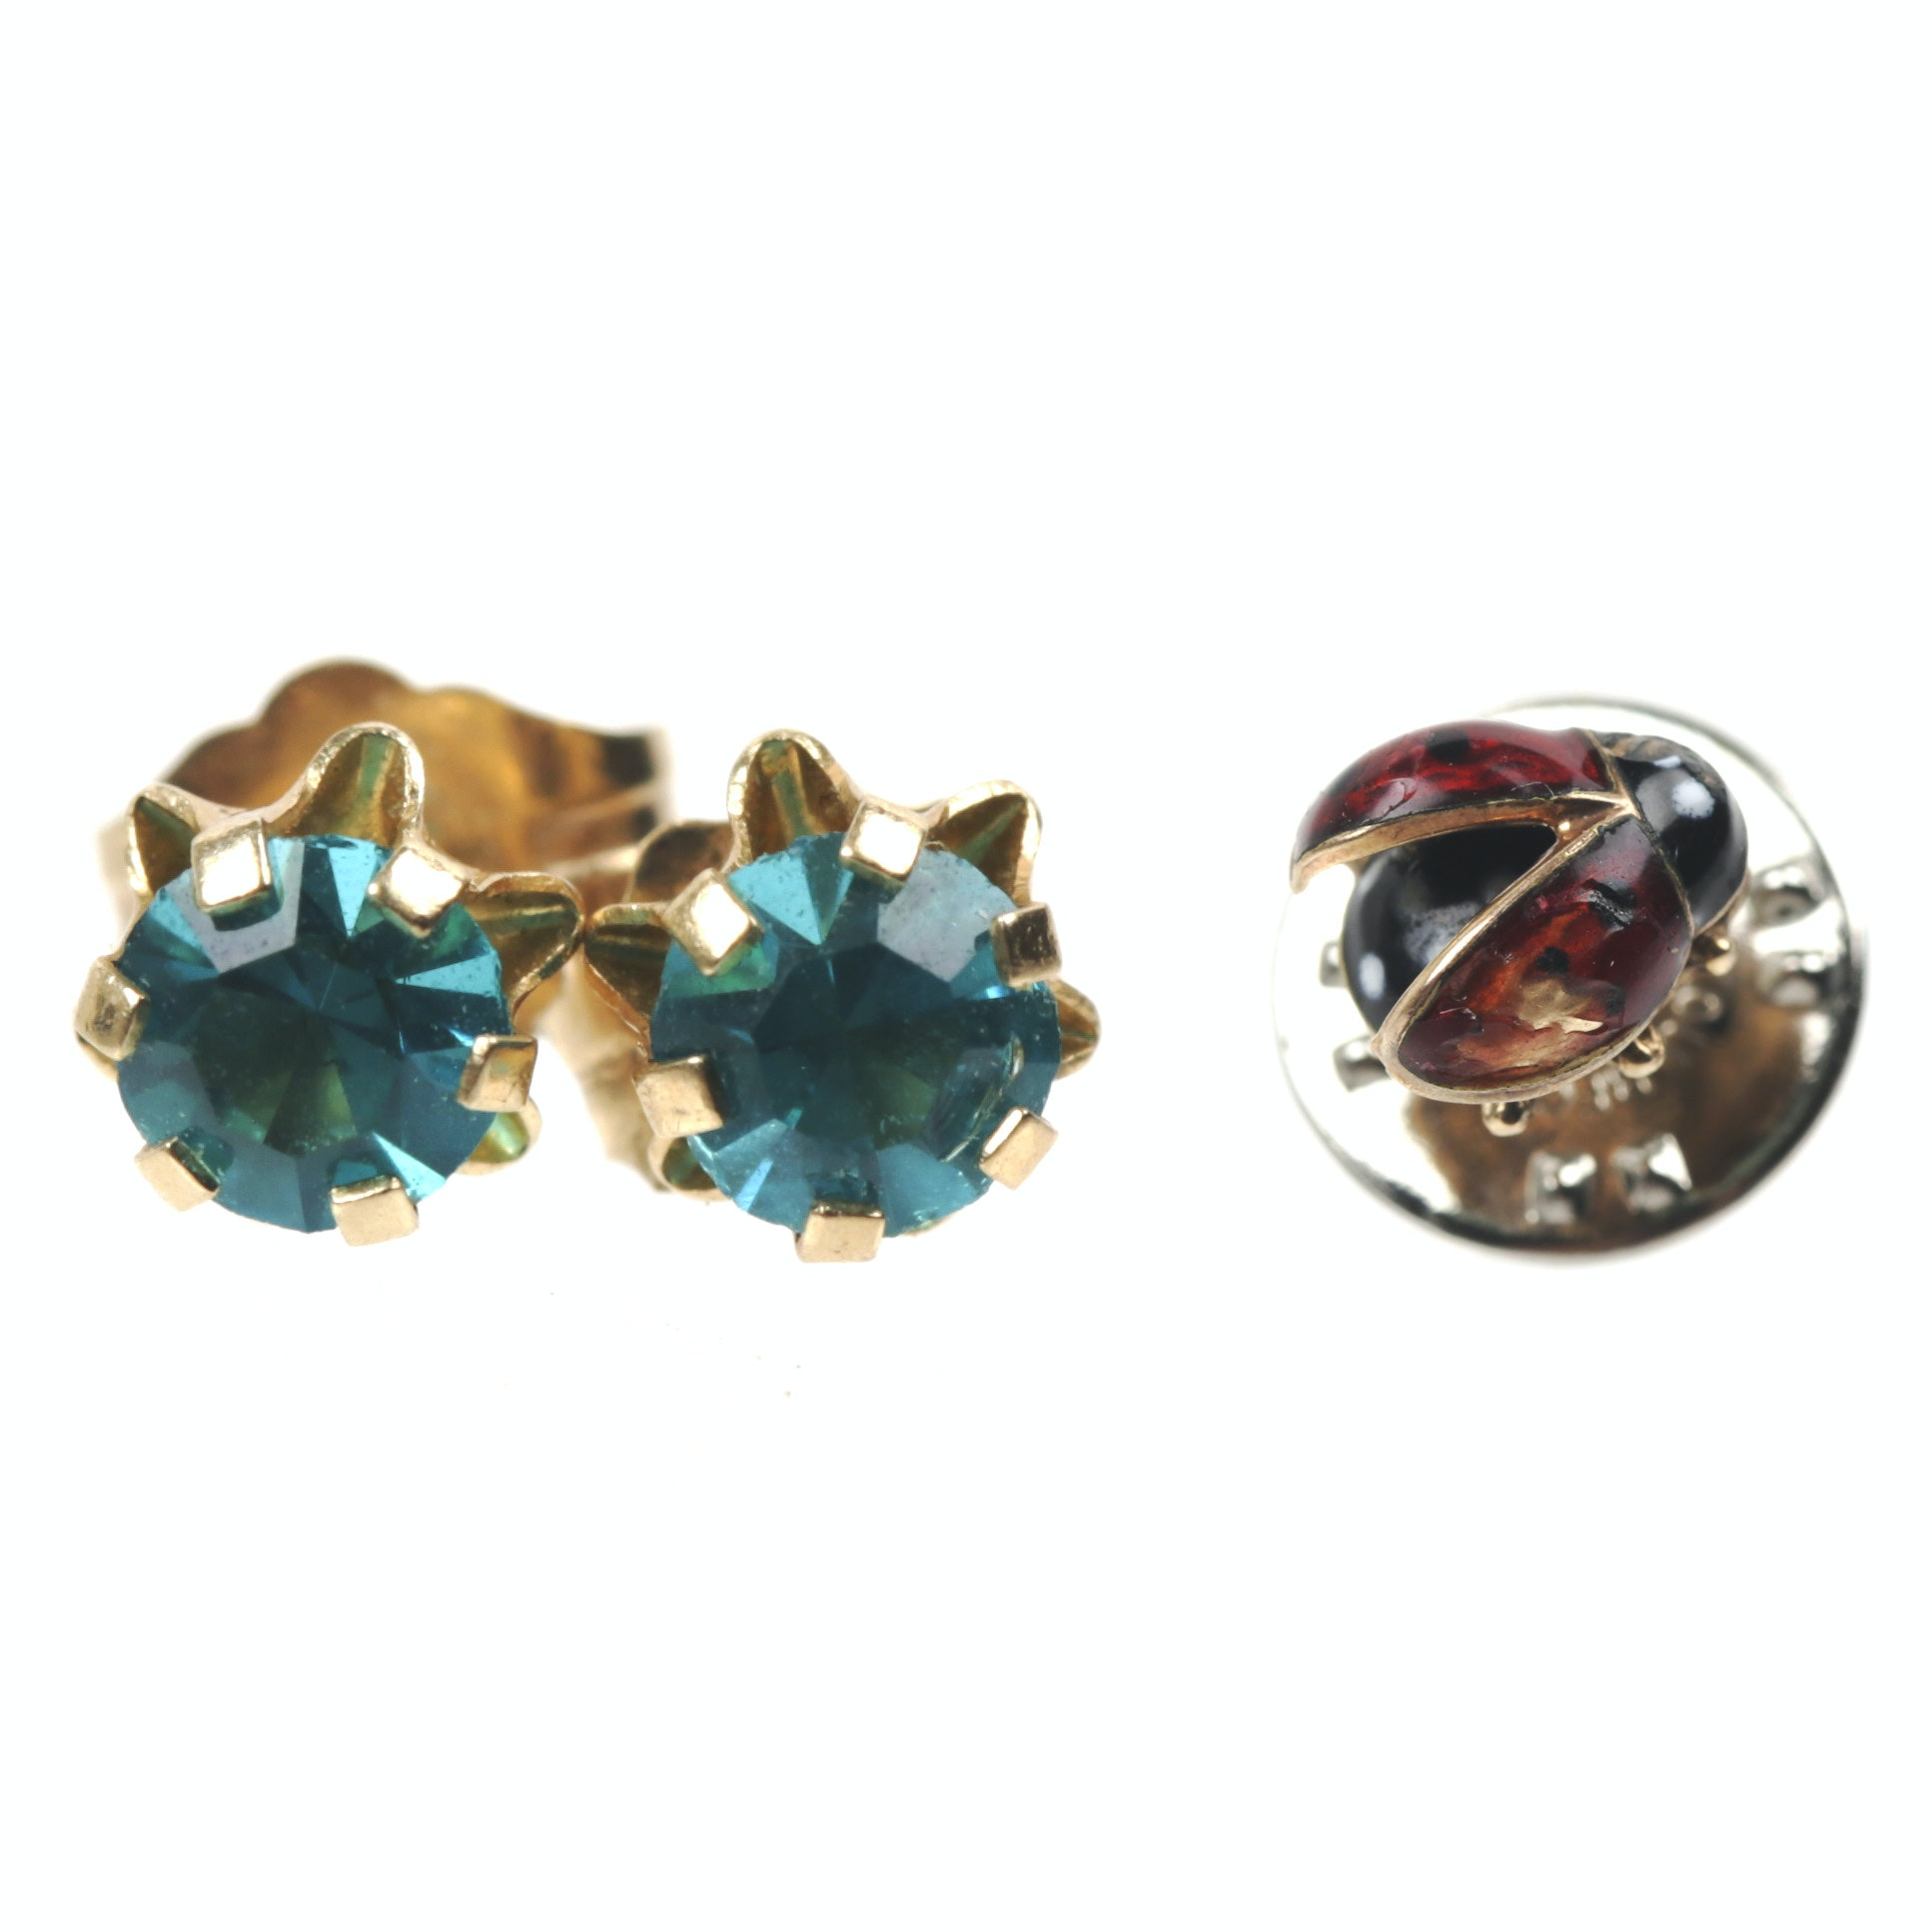 14k Yellow Gold Rhinestone Earrings and Enamel Ladybug Pin